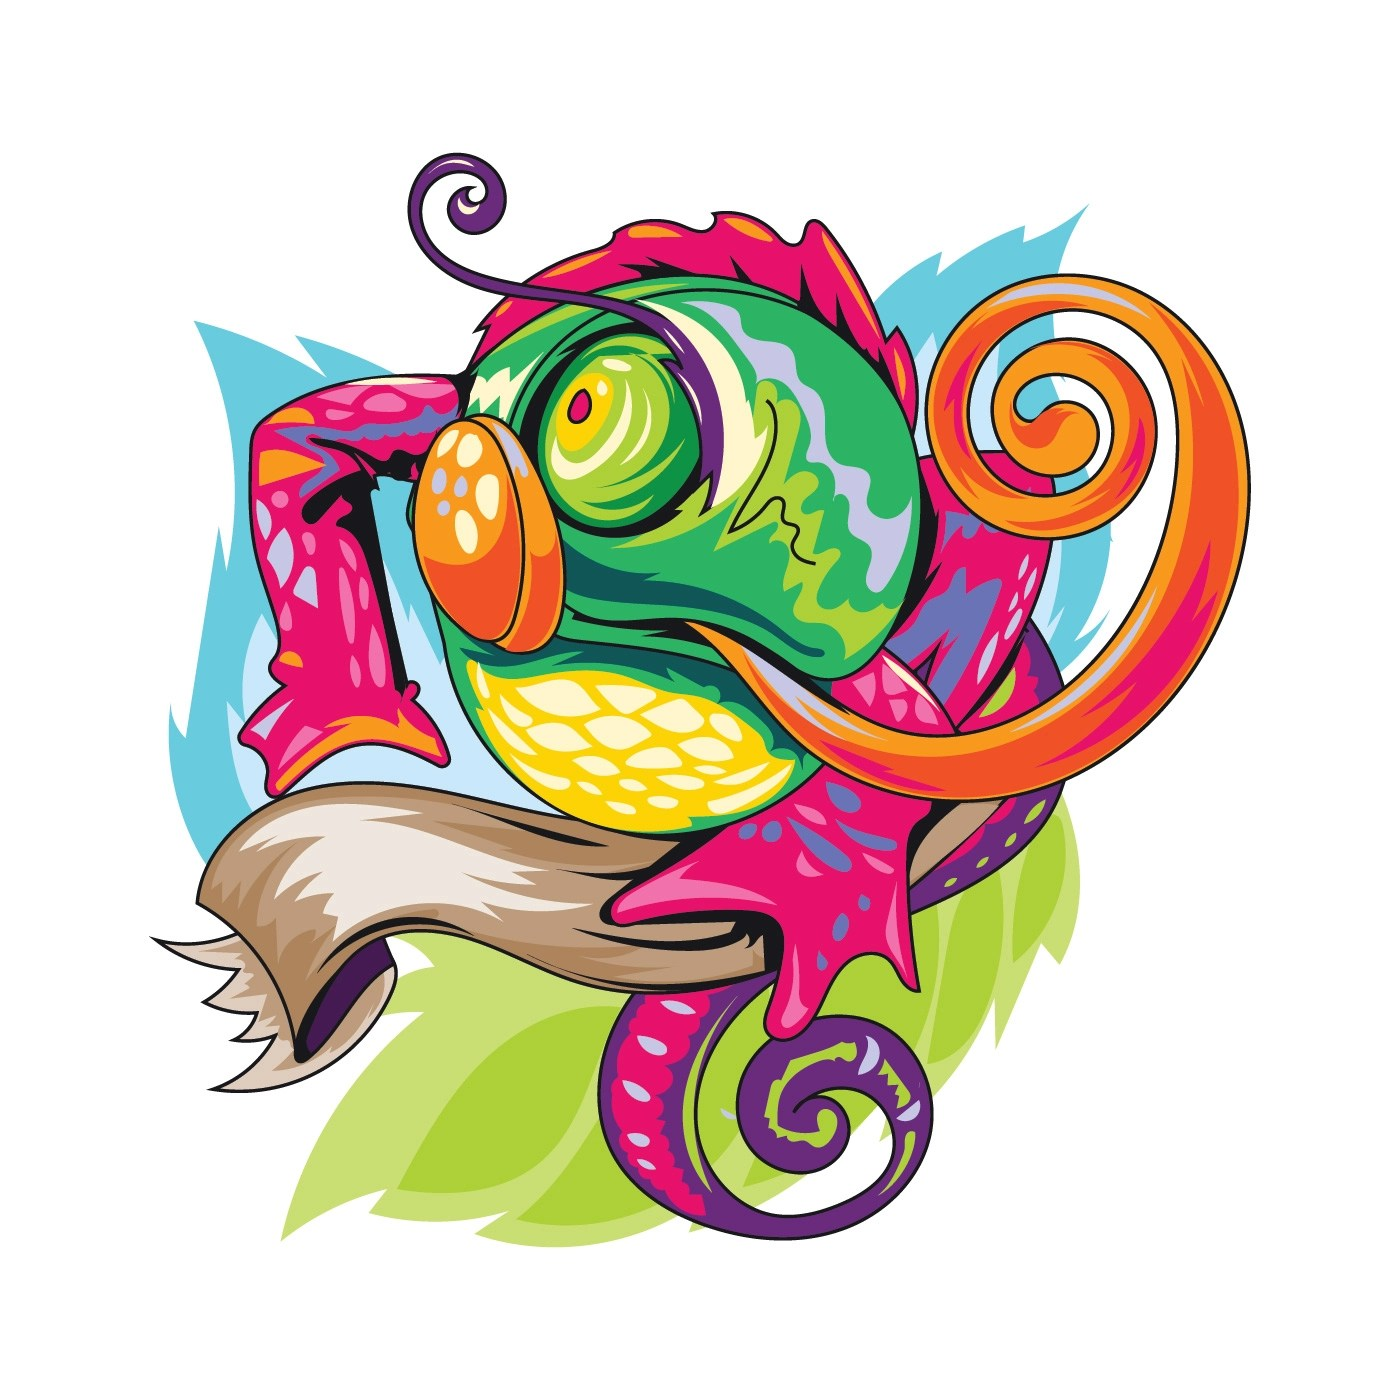 Chameleon Style Colorful Lizard Or Chameleon Illustration With New Skool Tattoos